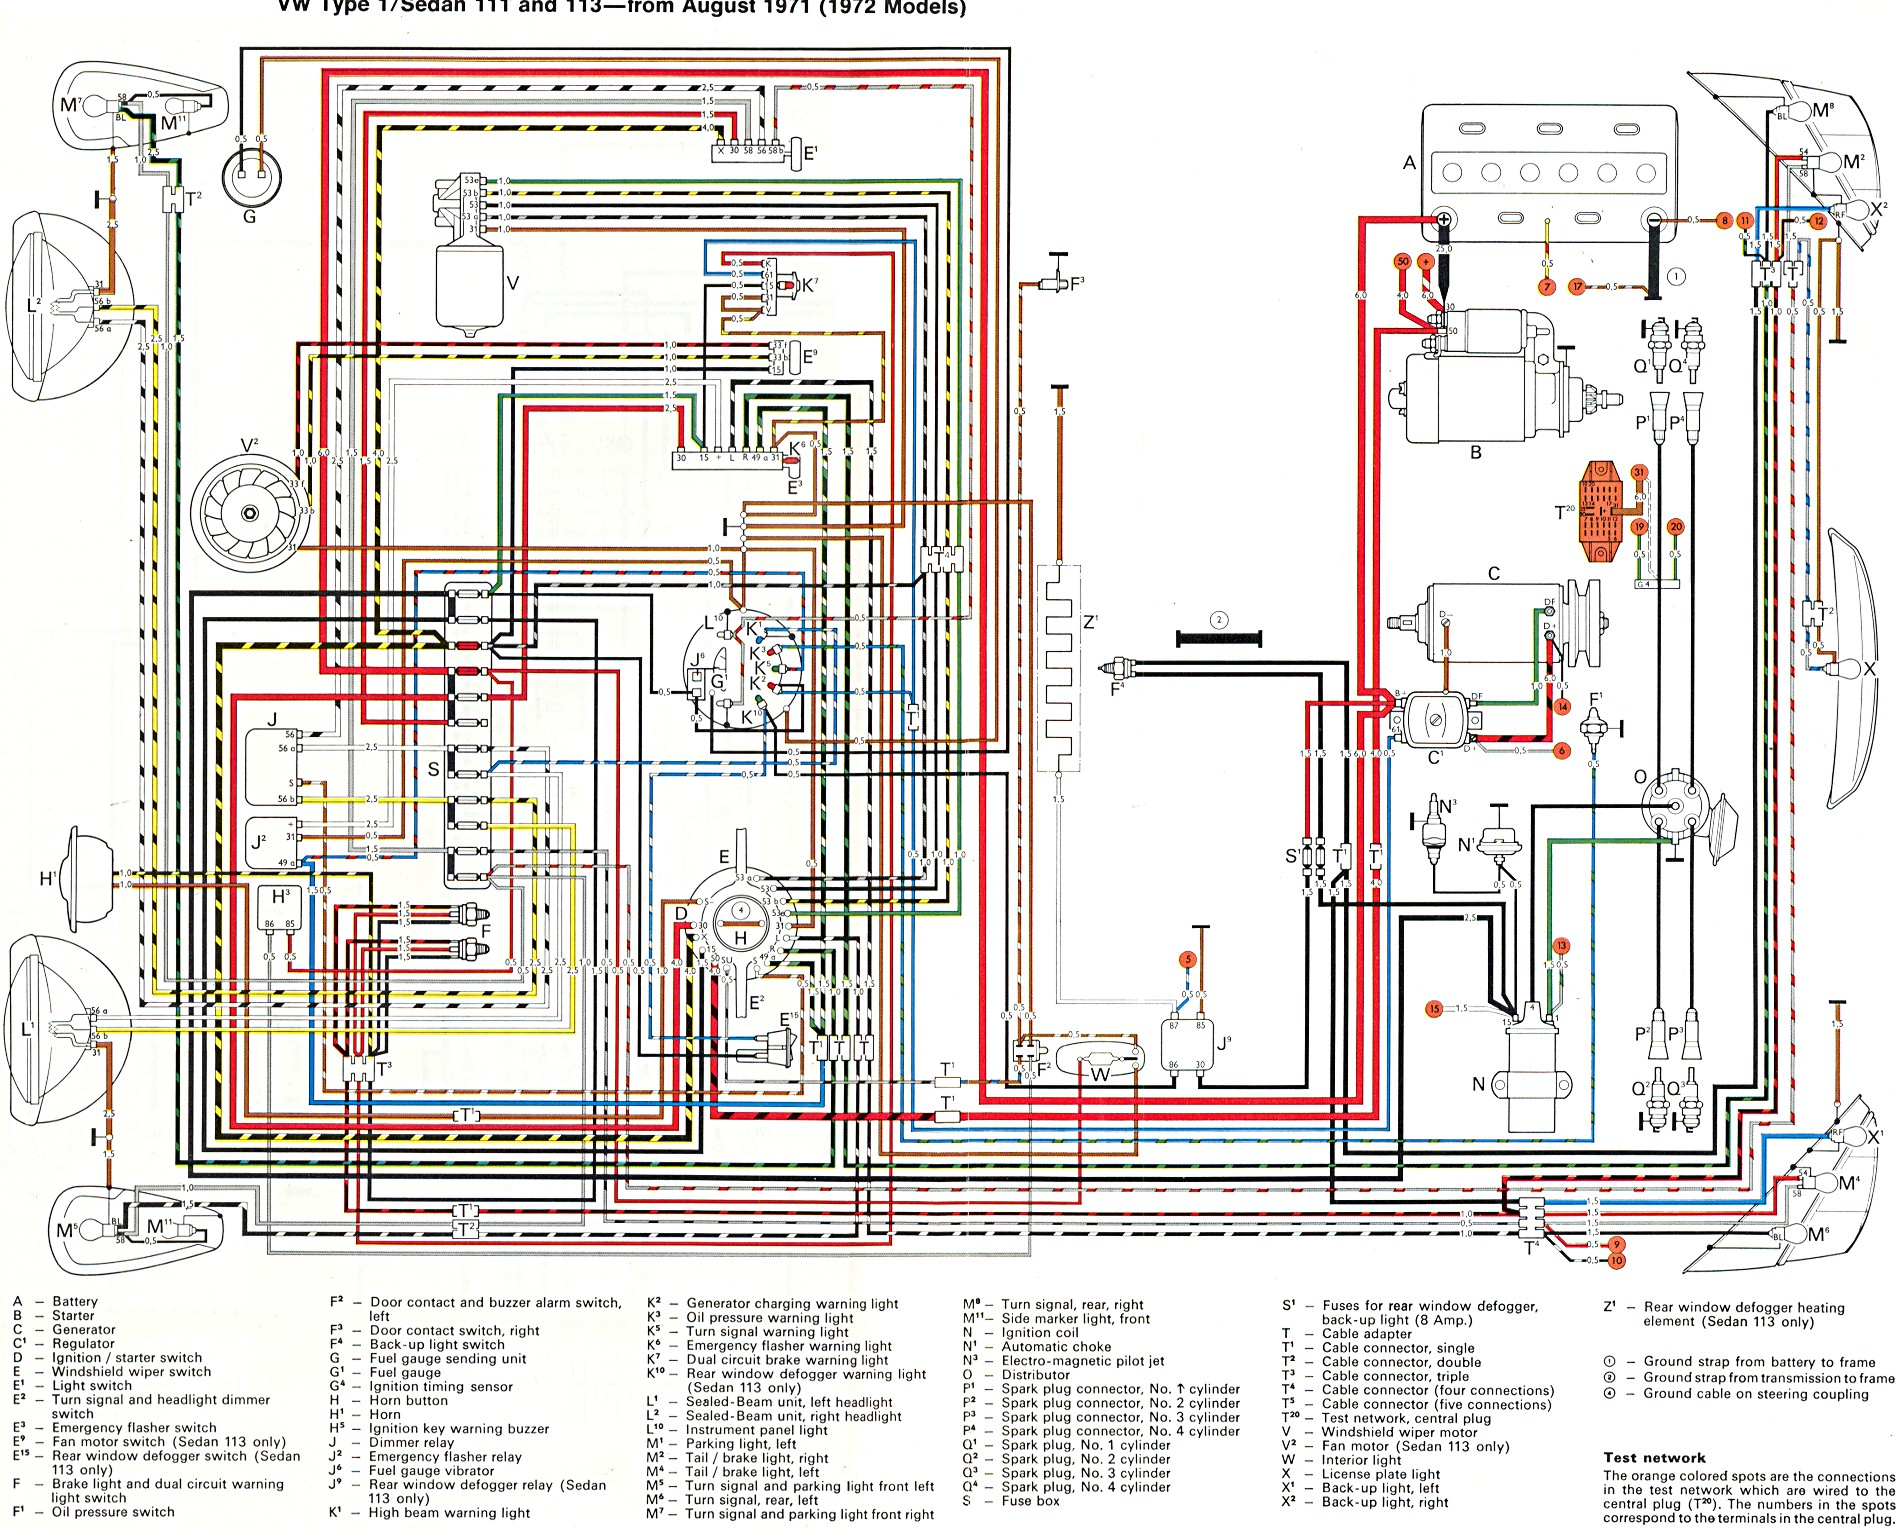 hight resolution of 1972 vw super beetle wiring diagram wiring diagram third level rh 11 9 15 jacobwinterstein com